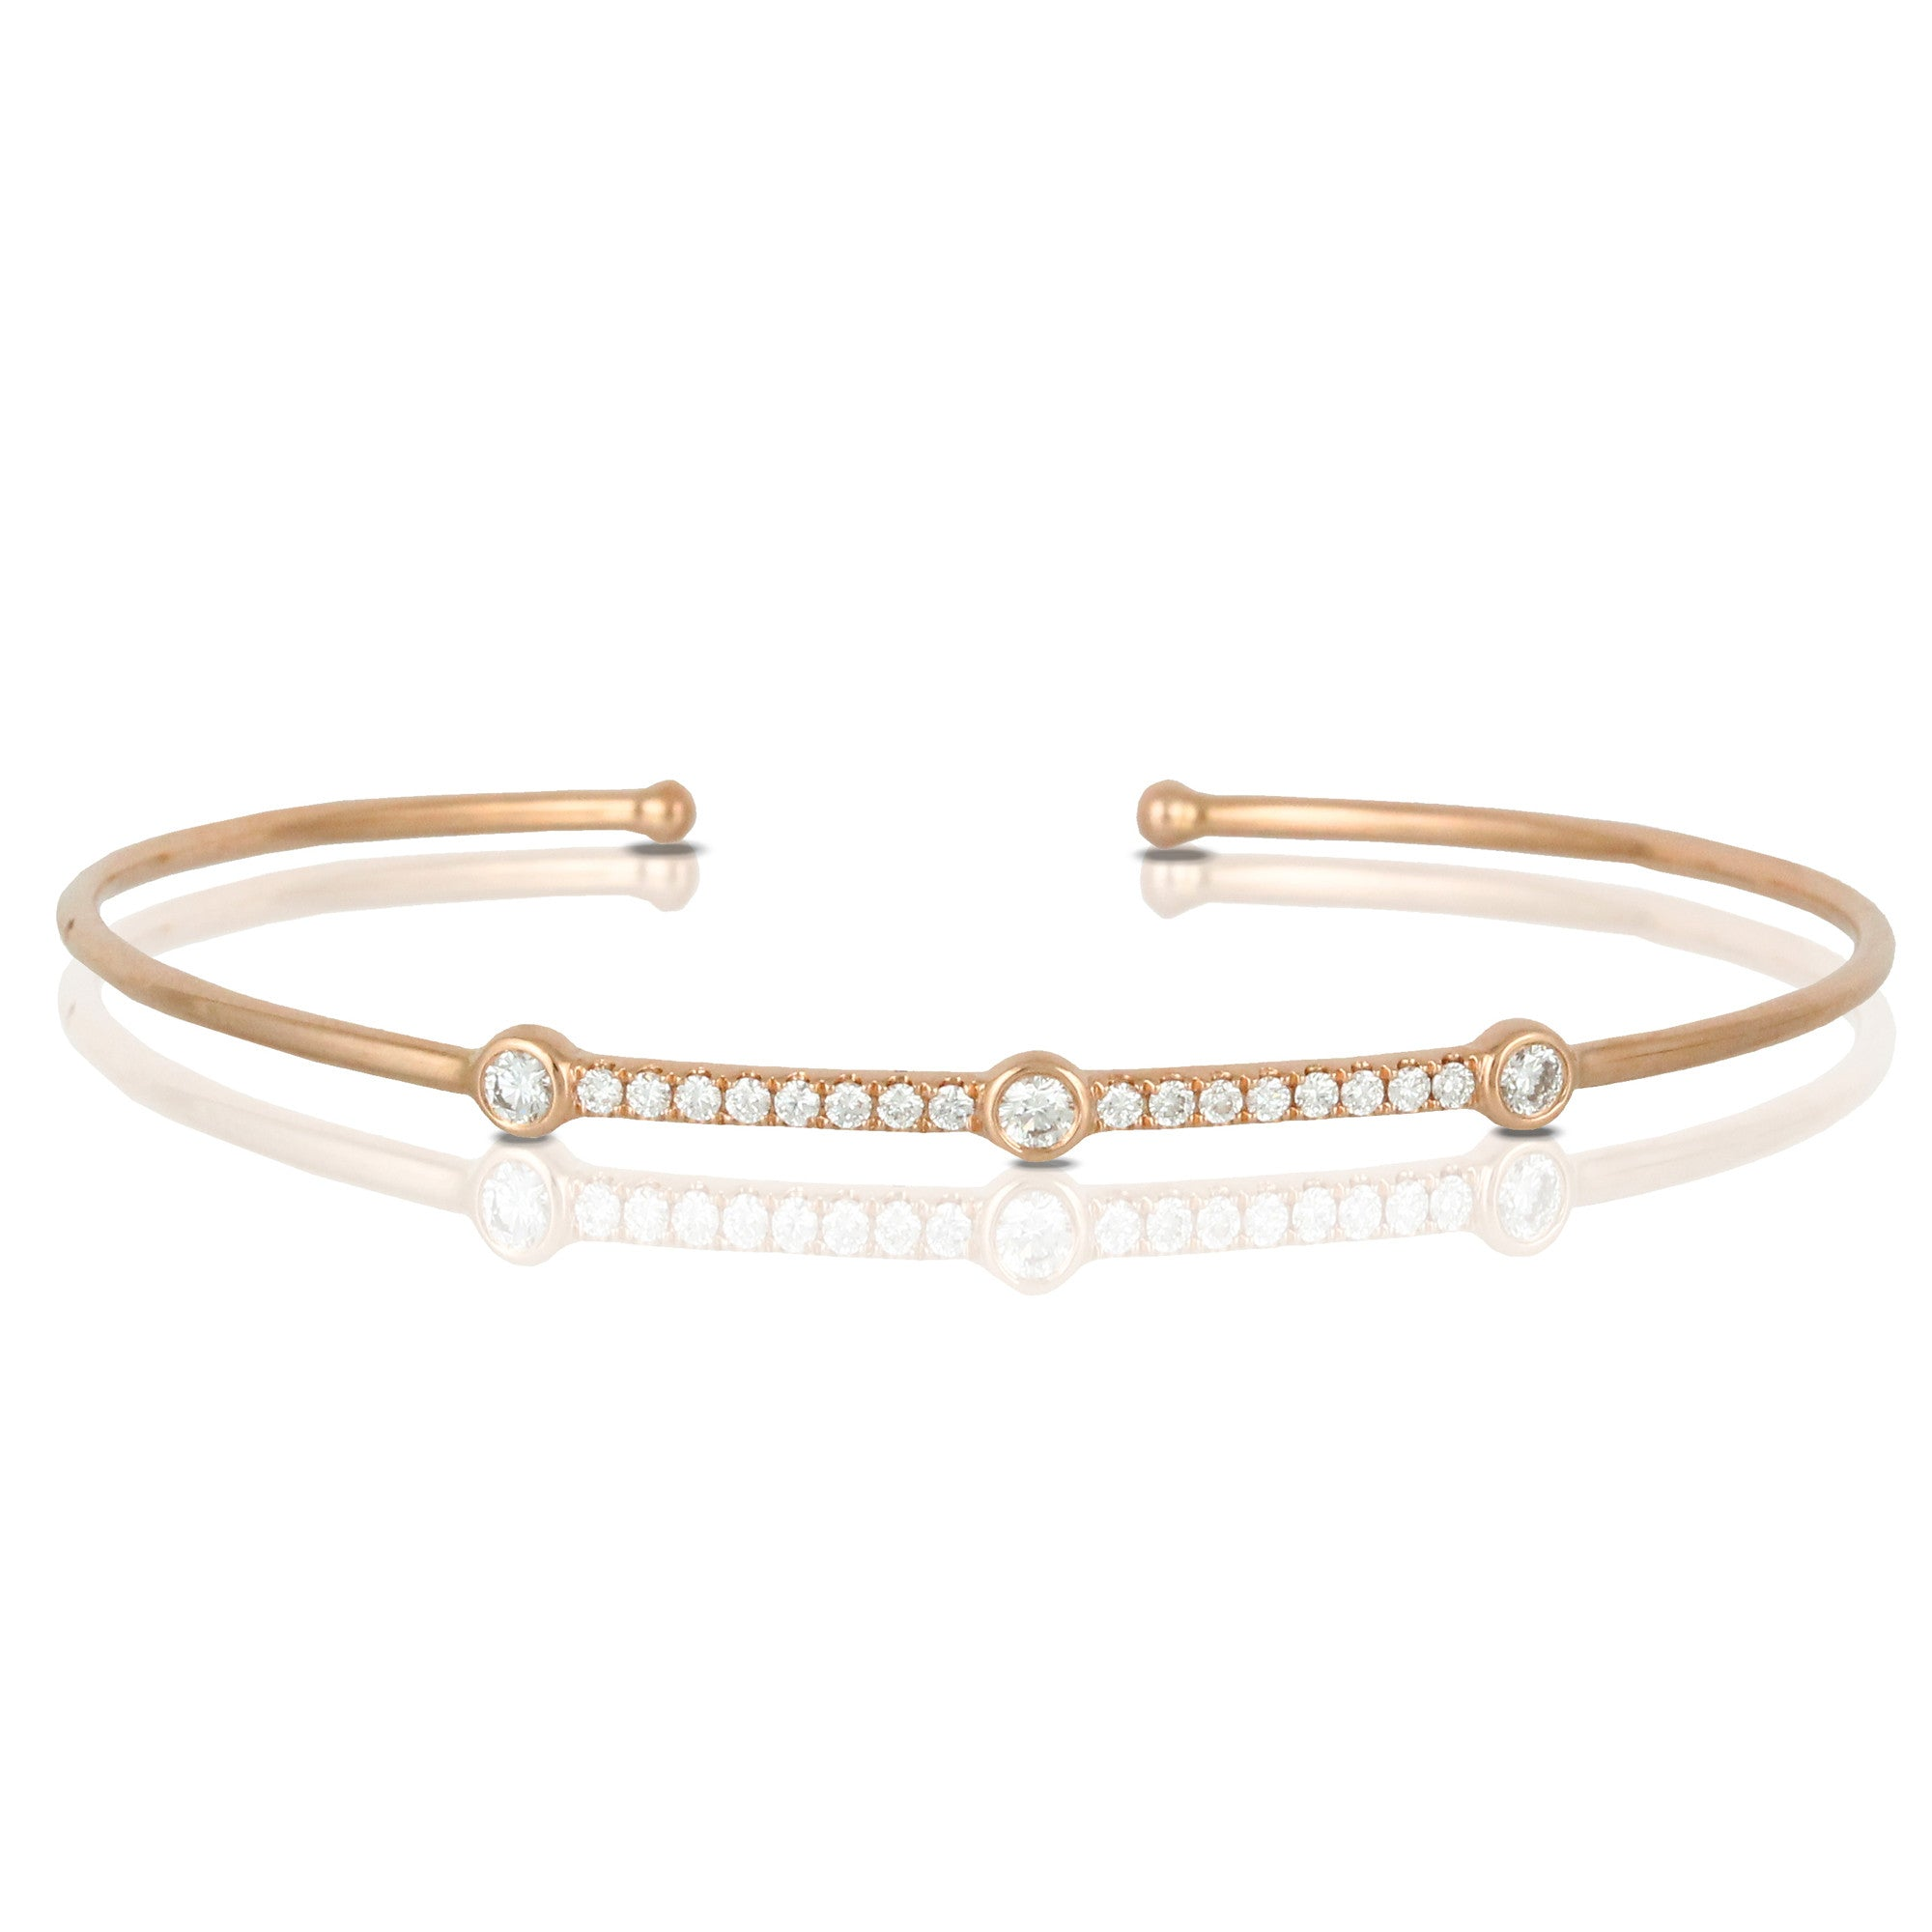 Doves 18K Rose Gold Open Bangle Cuff Bracelet with Diamonds